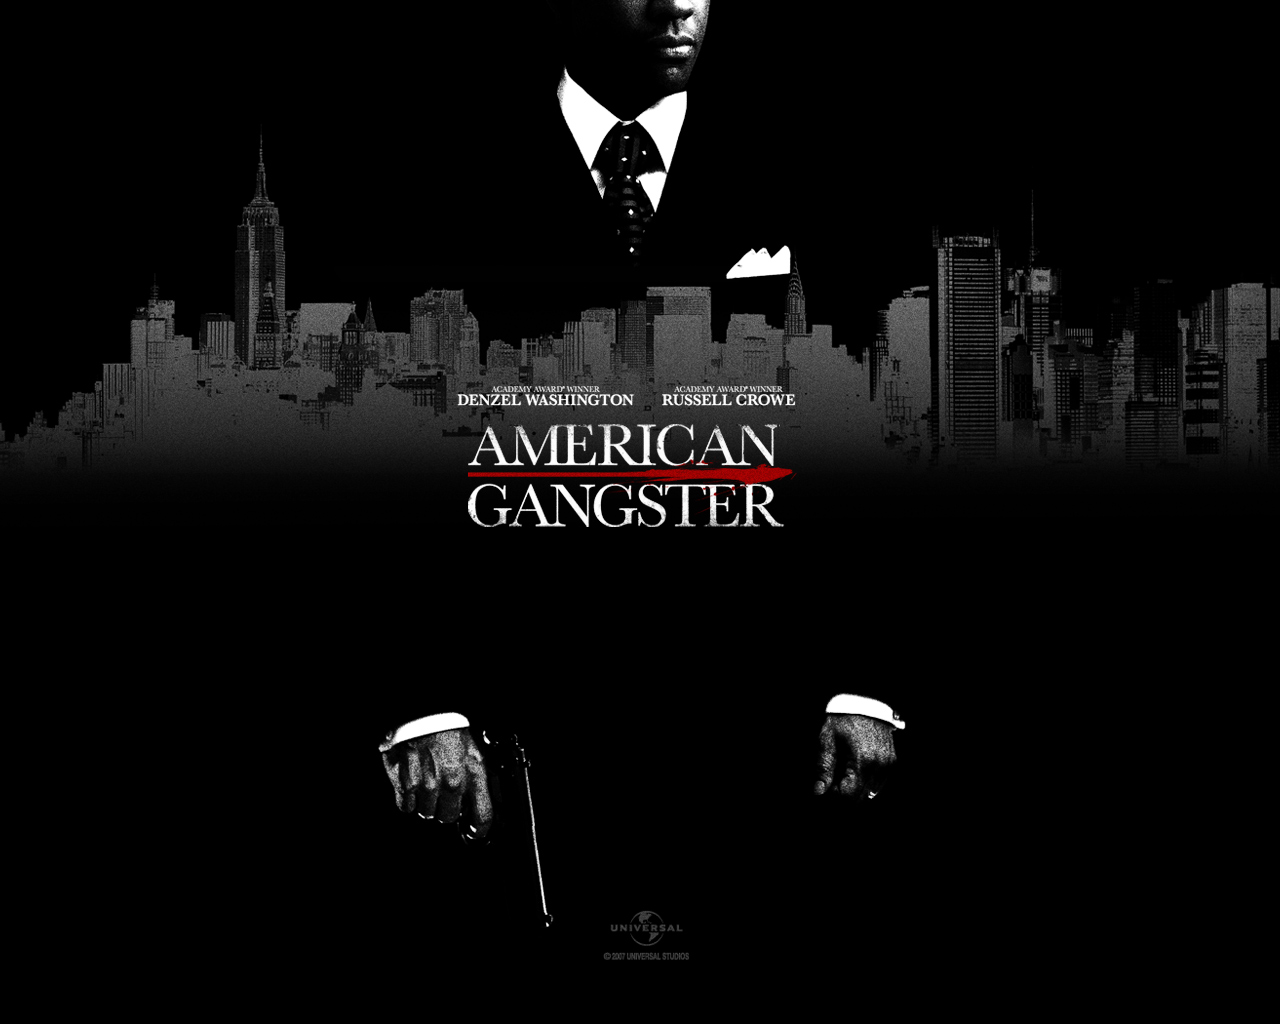 Gangster 1 Wallpapers American Gangster 1 Myspace Backgrounds 1280x1024